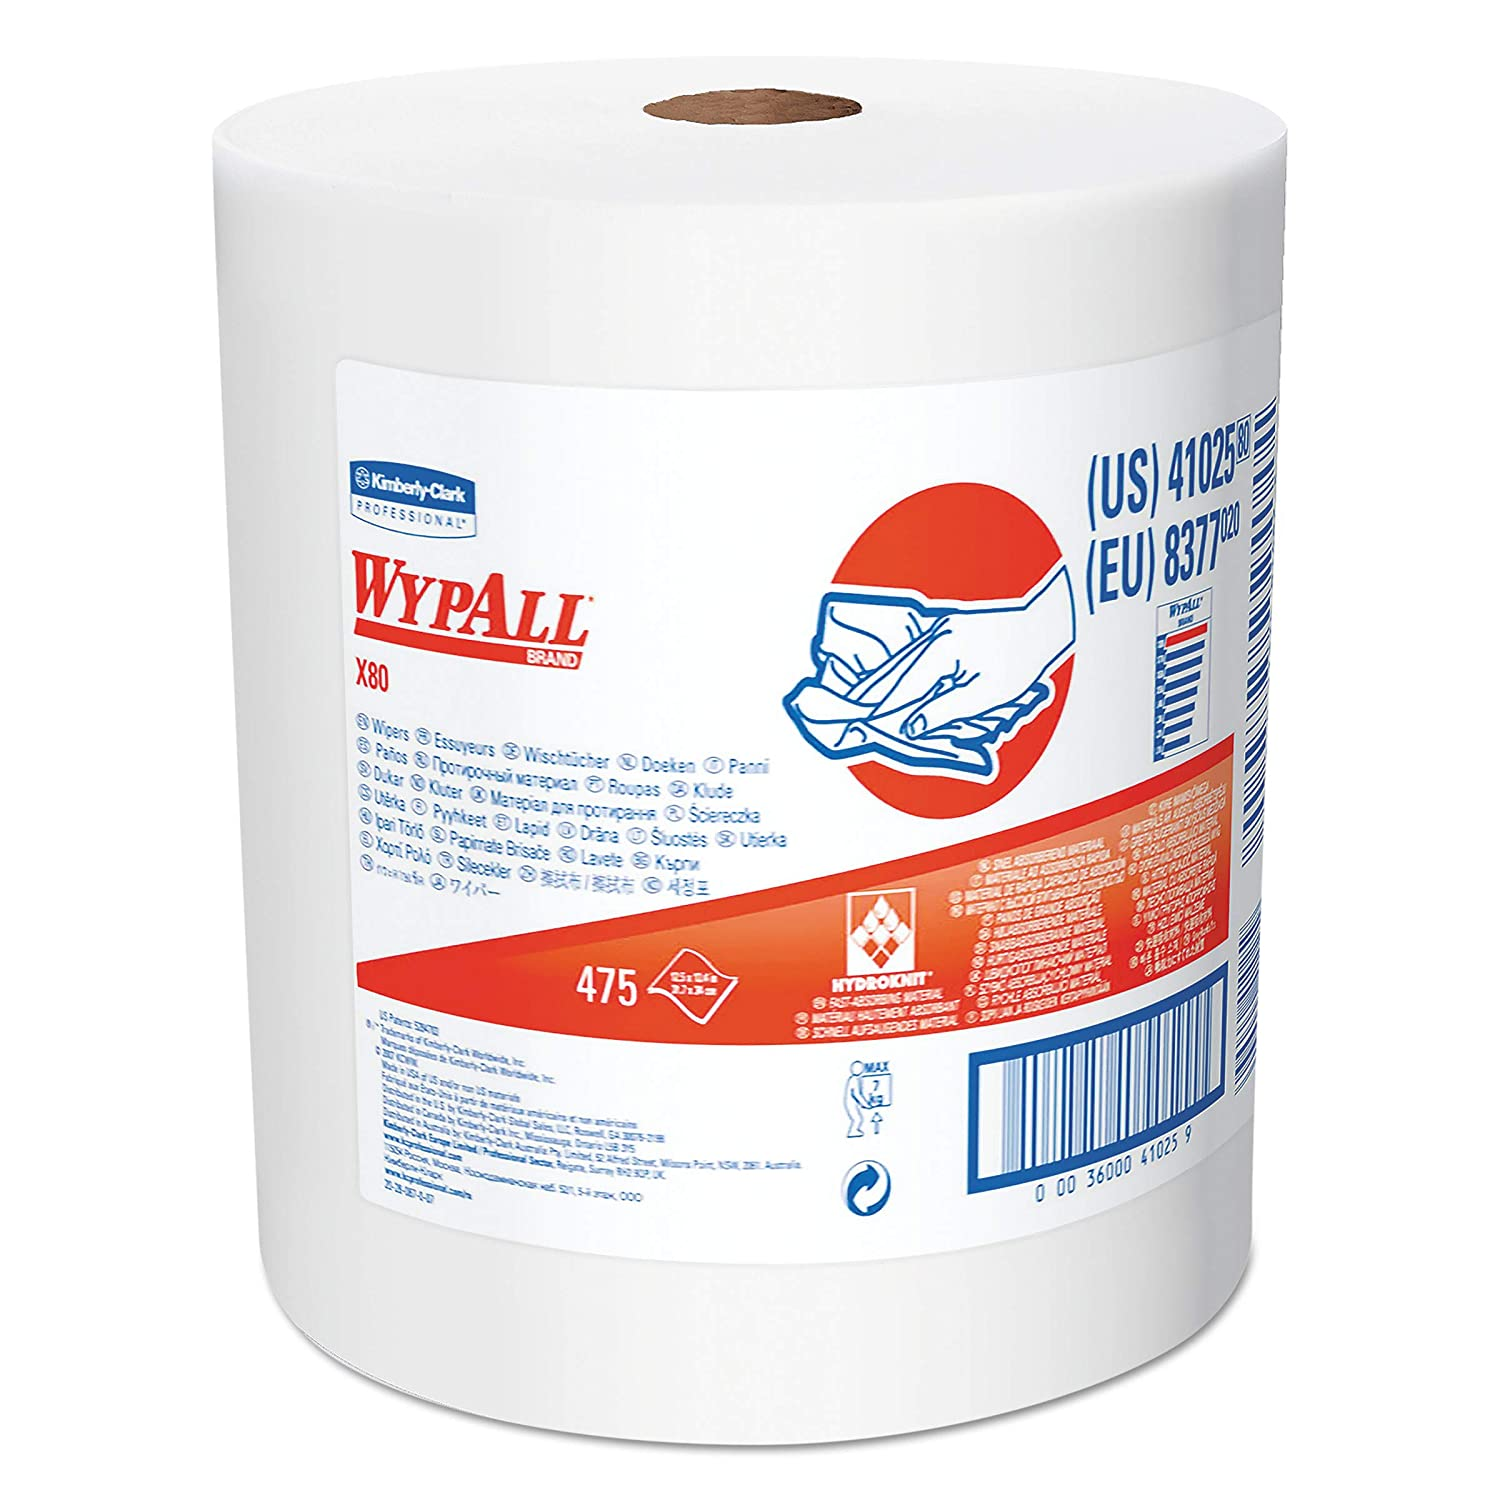 Wypall - 3600041025 WypAll 41025 X80 Cloths with HYDROKNIT, Jumbo Roll, 12 1/2w x 13.4 White, 475 Roll